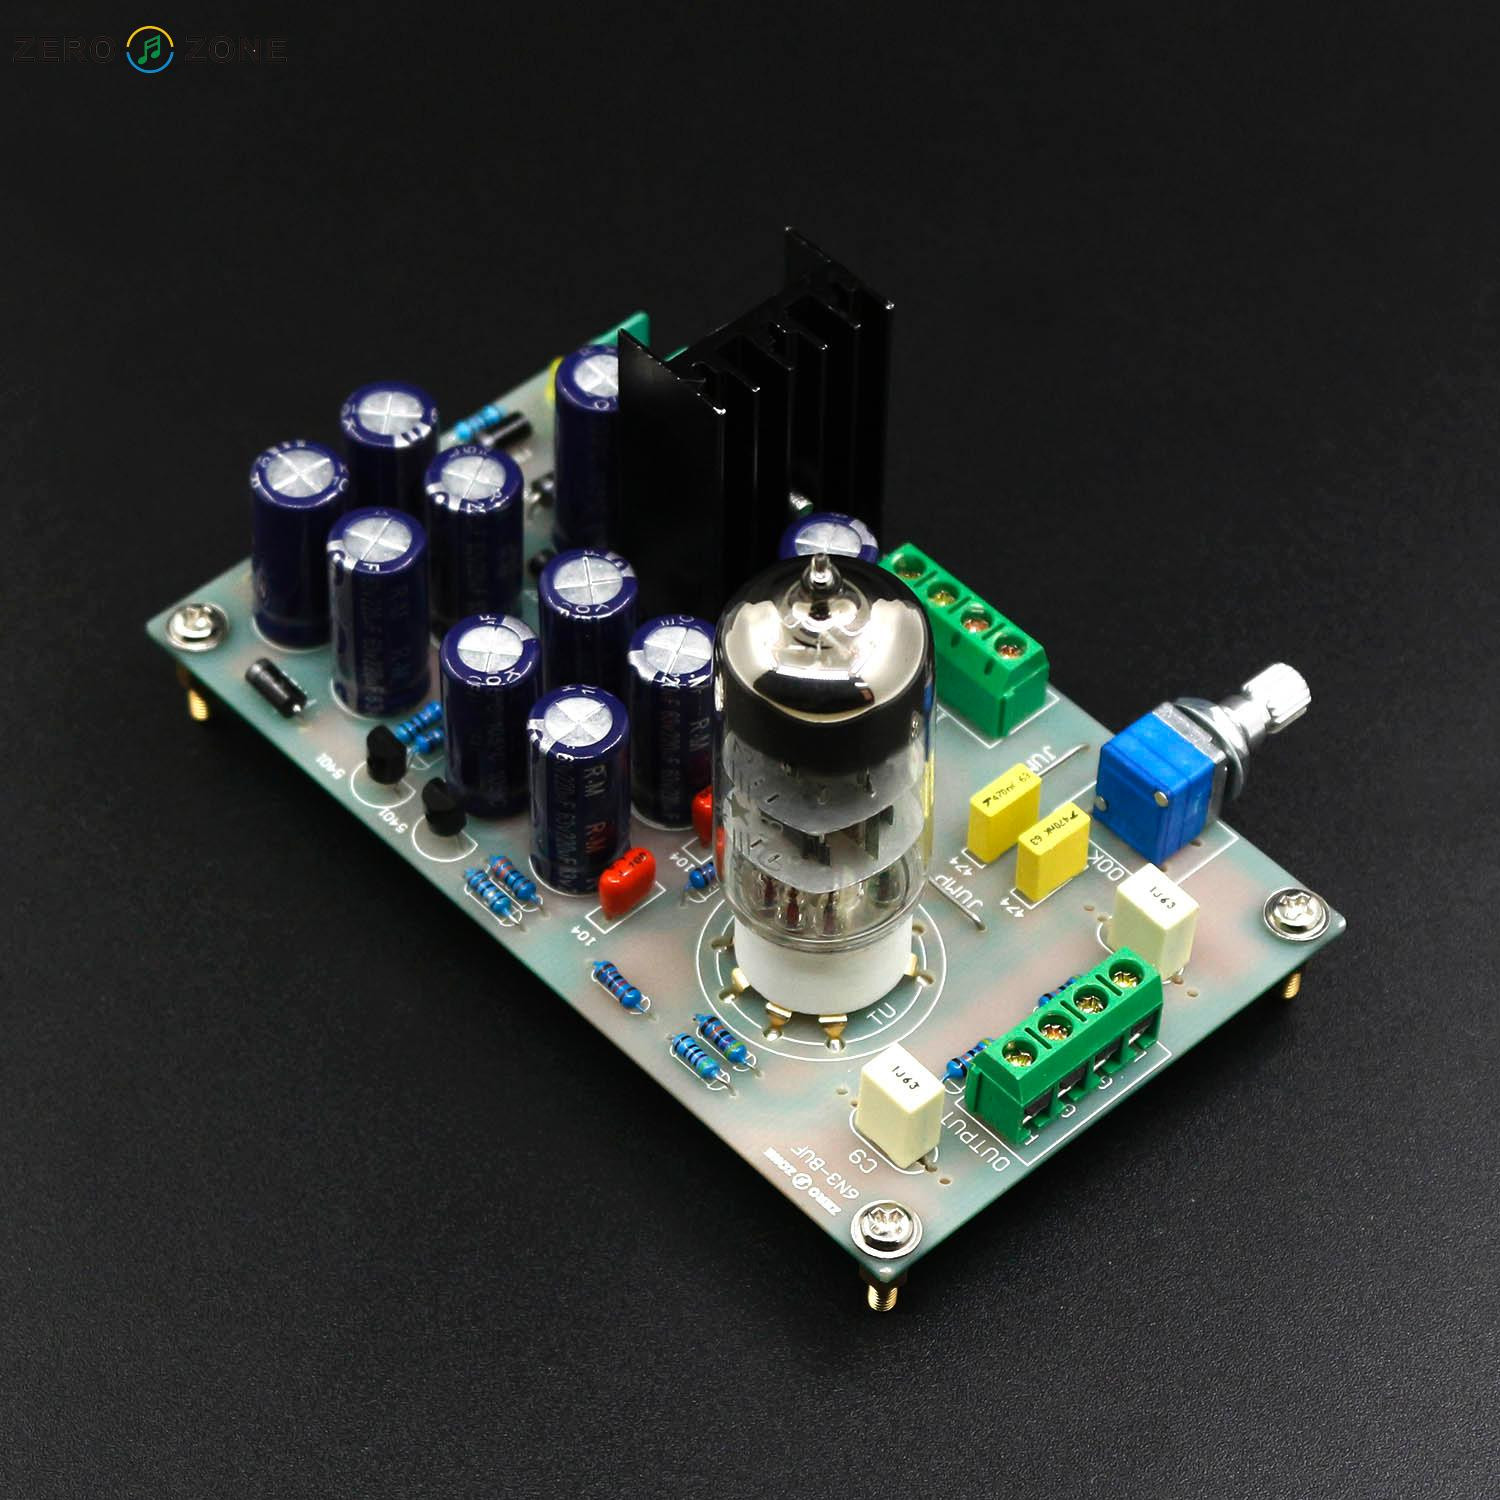 Best ideas about DIY Preamp Kit . Save or Pin NEW DIY KIT Tube 6N3 Buffer Audio Preamplifier Pre AMP Kit Now.